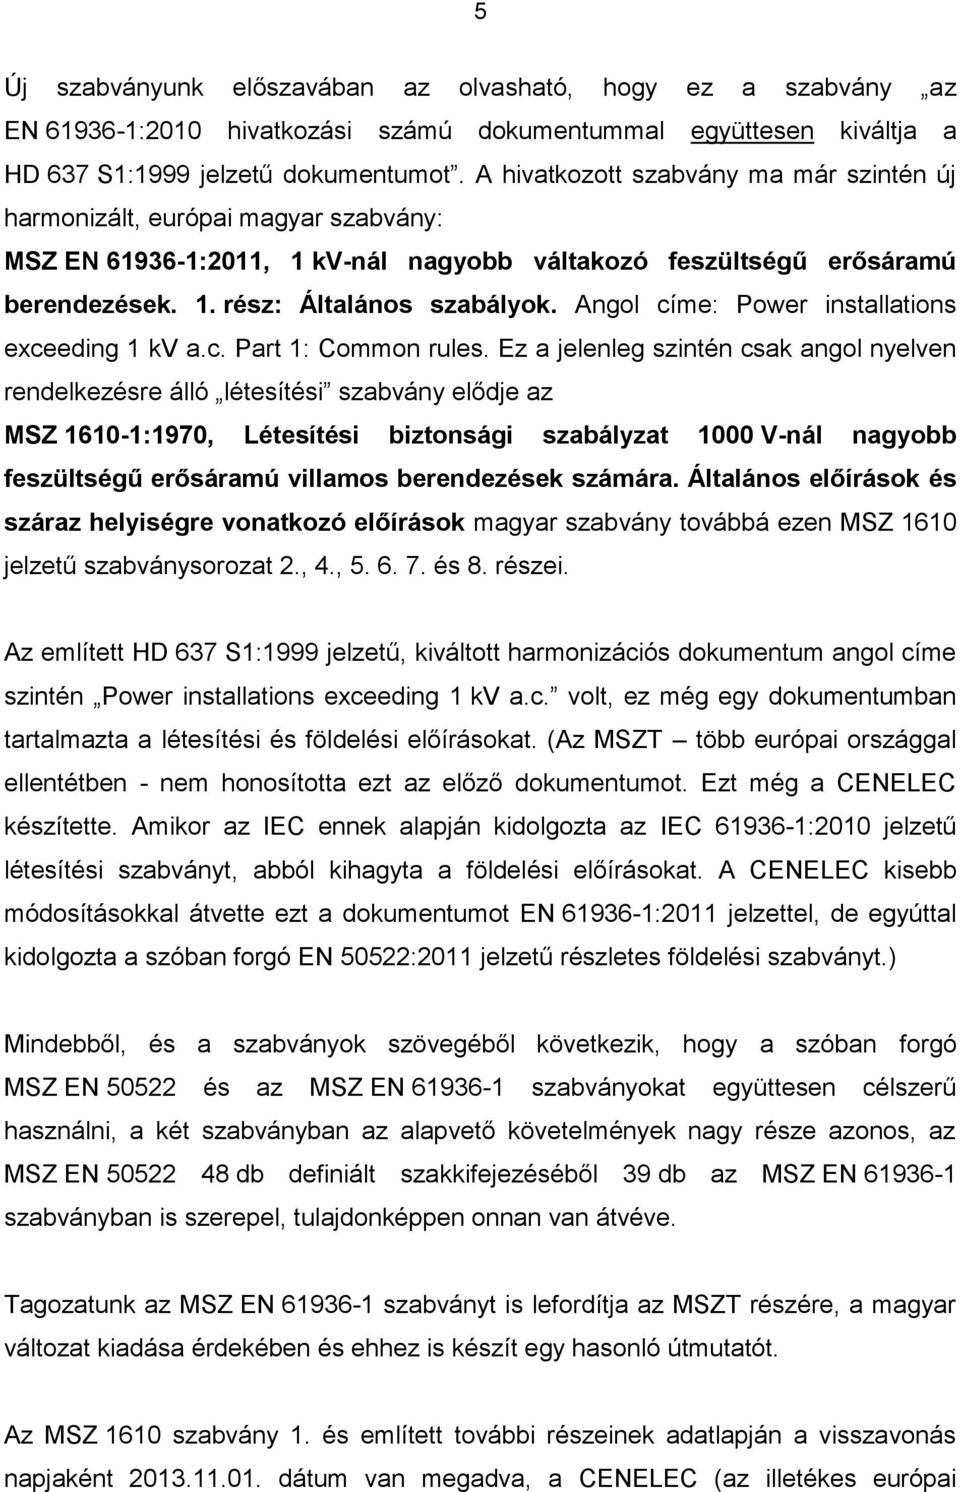 Angol címe: Power installations exceeding 1 kv a.c. Part 1: Common rules.